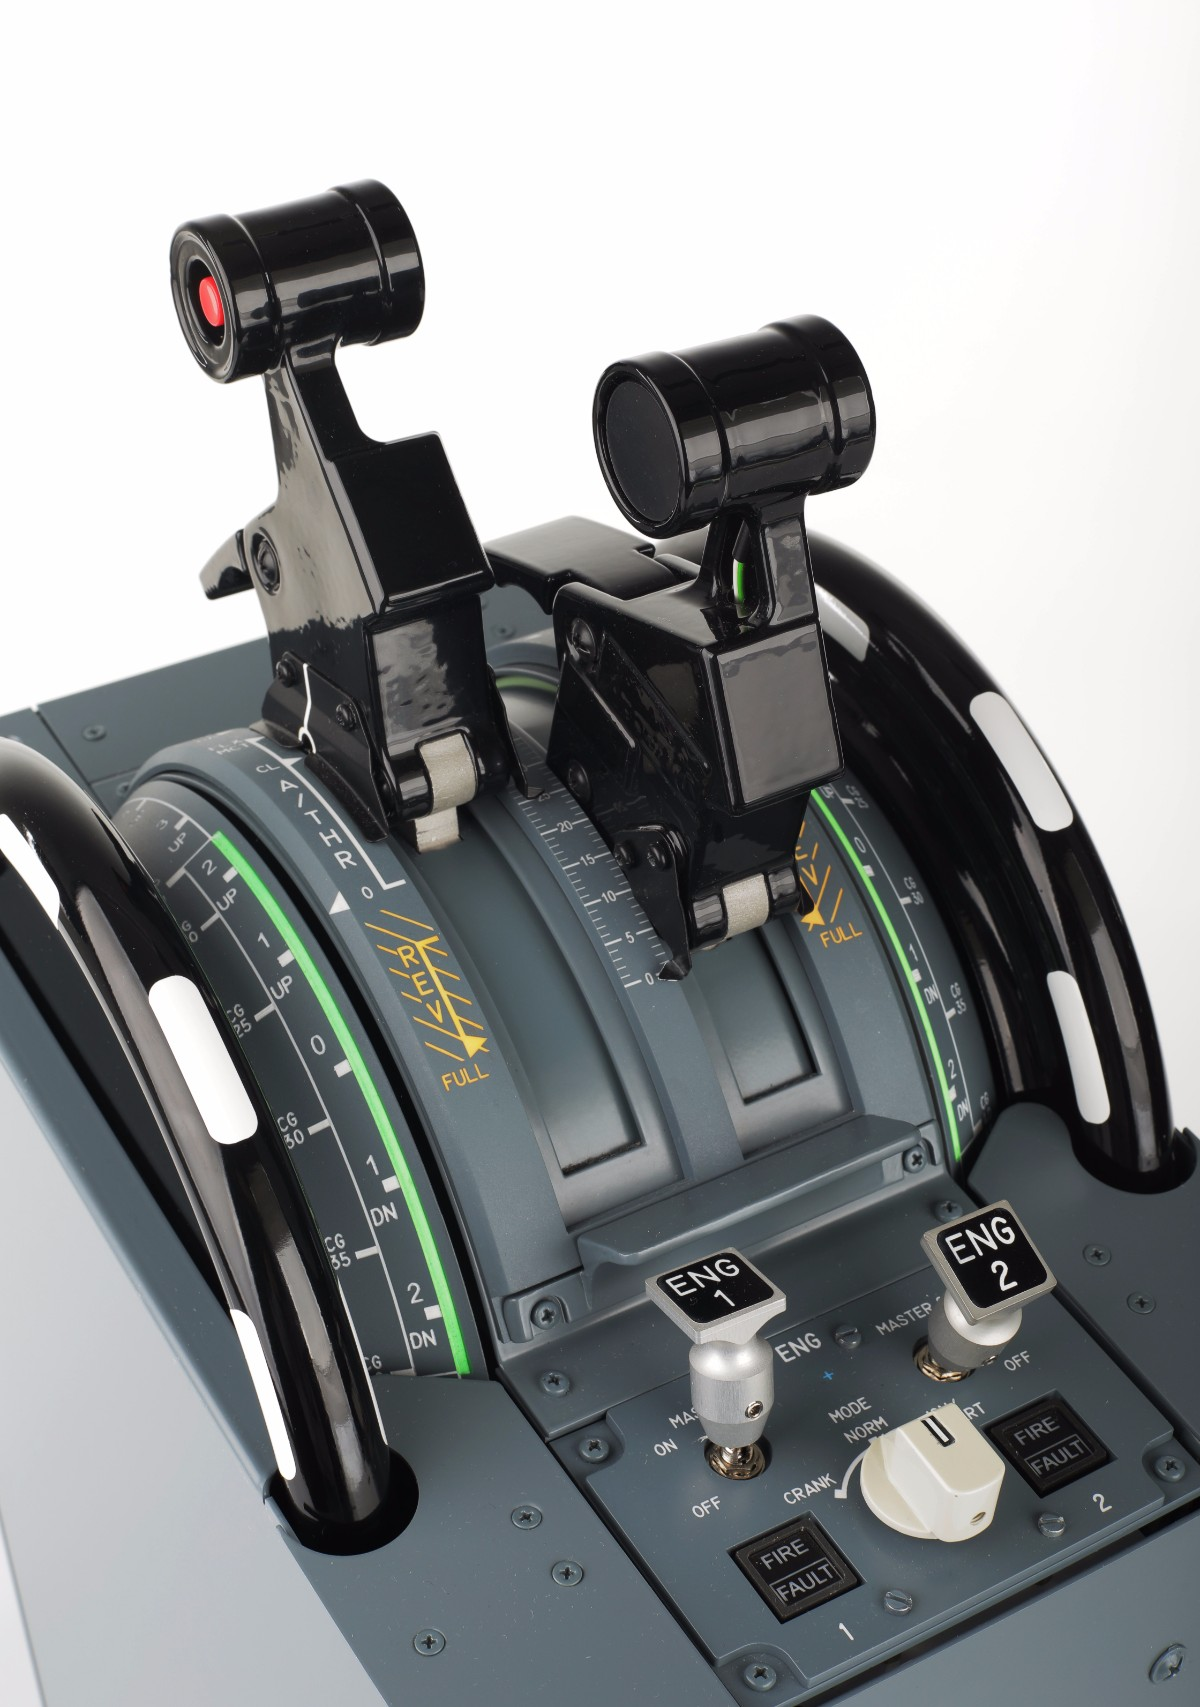 Fsc a320 throttle pro levers